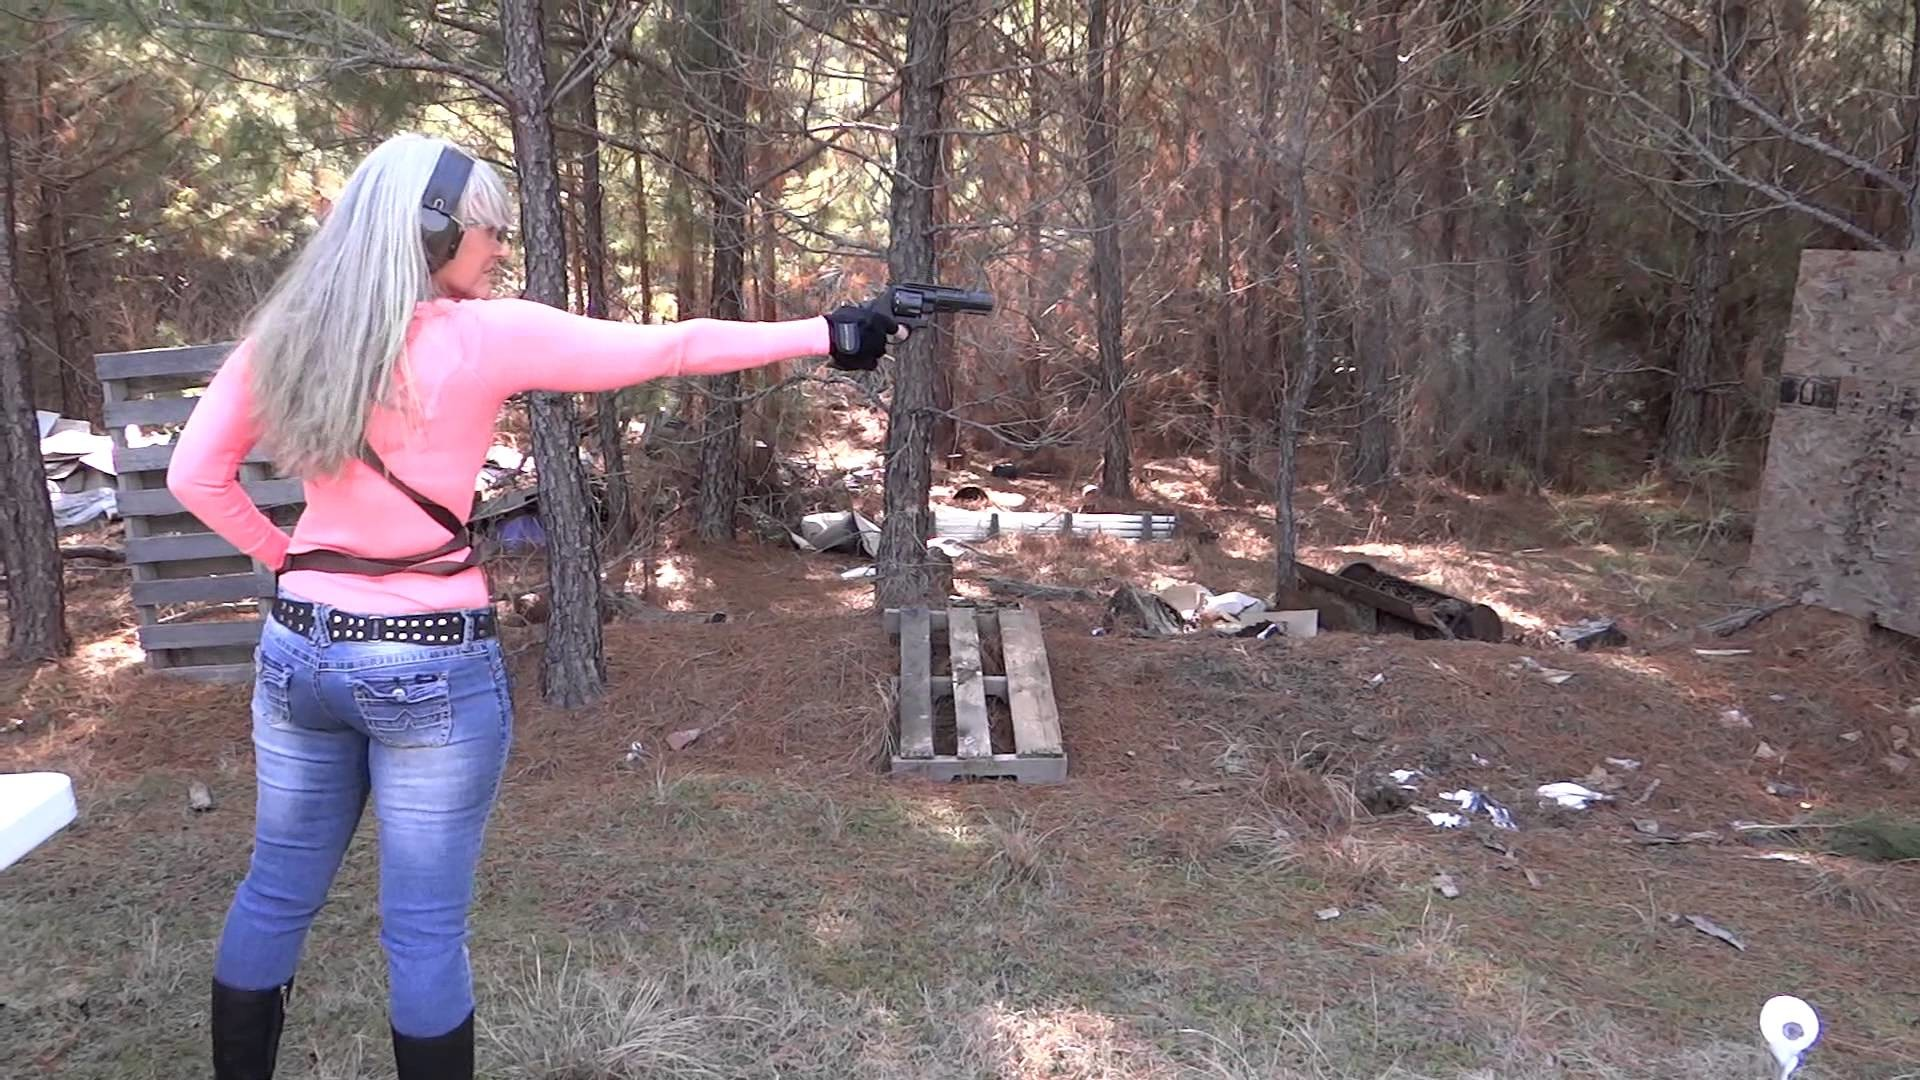 1920x1080 M&P R8 .357 Performance Center S&W Texas one handed Teri LaFaye/The Pistol  Poet - YouTube